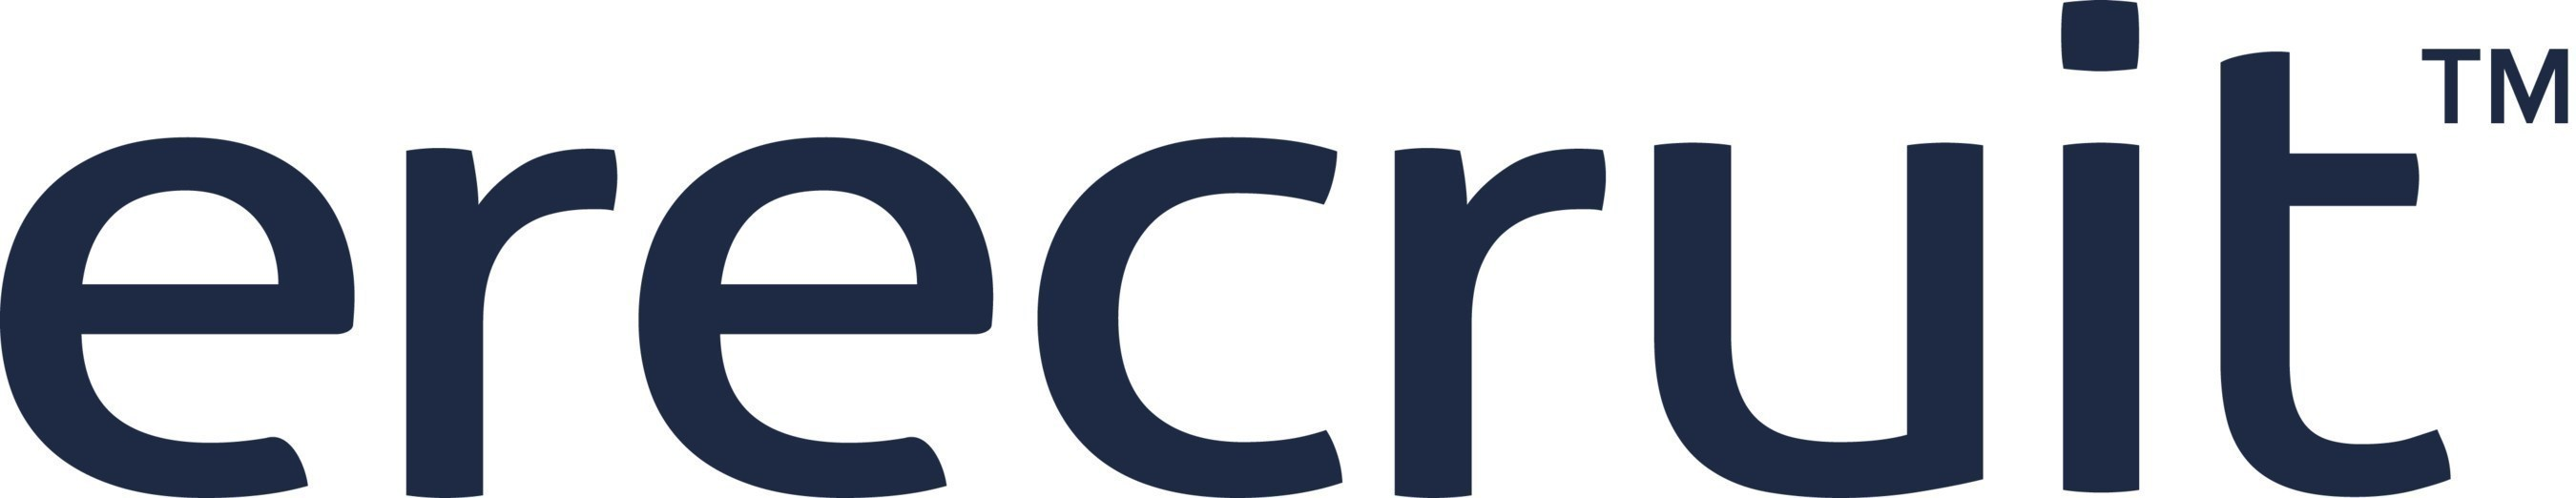 erecruit is the leading innovator in enterprise staffing software, VMS and onboarding solutions for large staffing firms and employers. erecruit uses modern, standards-based technologies to provide highly scalable and configurable solutions that allow today's best firms to put their clients, candidates and vendors at the heart of their businesses. Learn more at www.erecruit.com